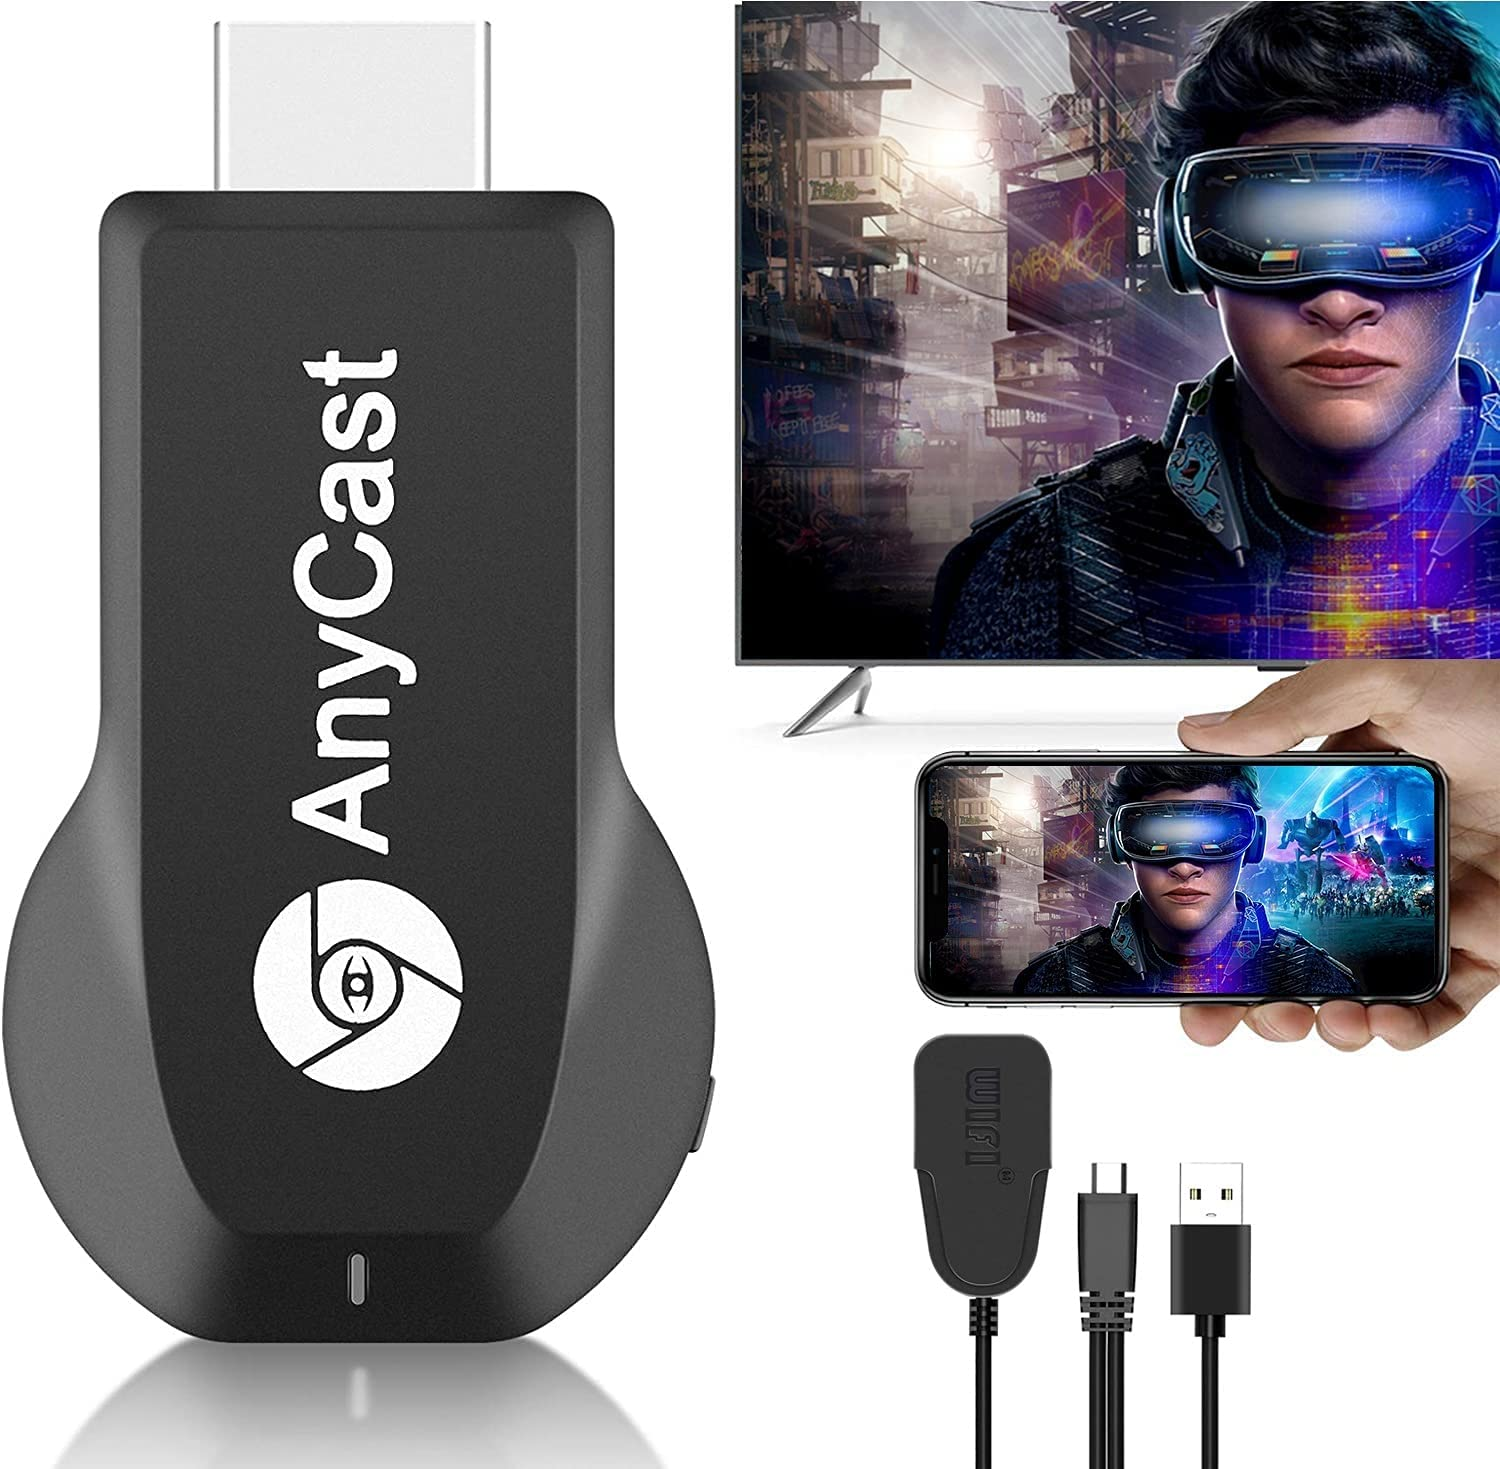 Streaming Media Players 【2021】 Wireless HDMI Display Adapter 4K Ultra HD HDR, Streaming Dongle Receiver for iPad/iPhone/iOS/Android/Window/Mac OS Laptop, Tablet, PC to TV/Monitor/Projector, Support Ai